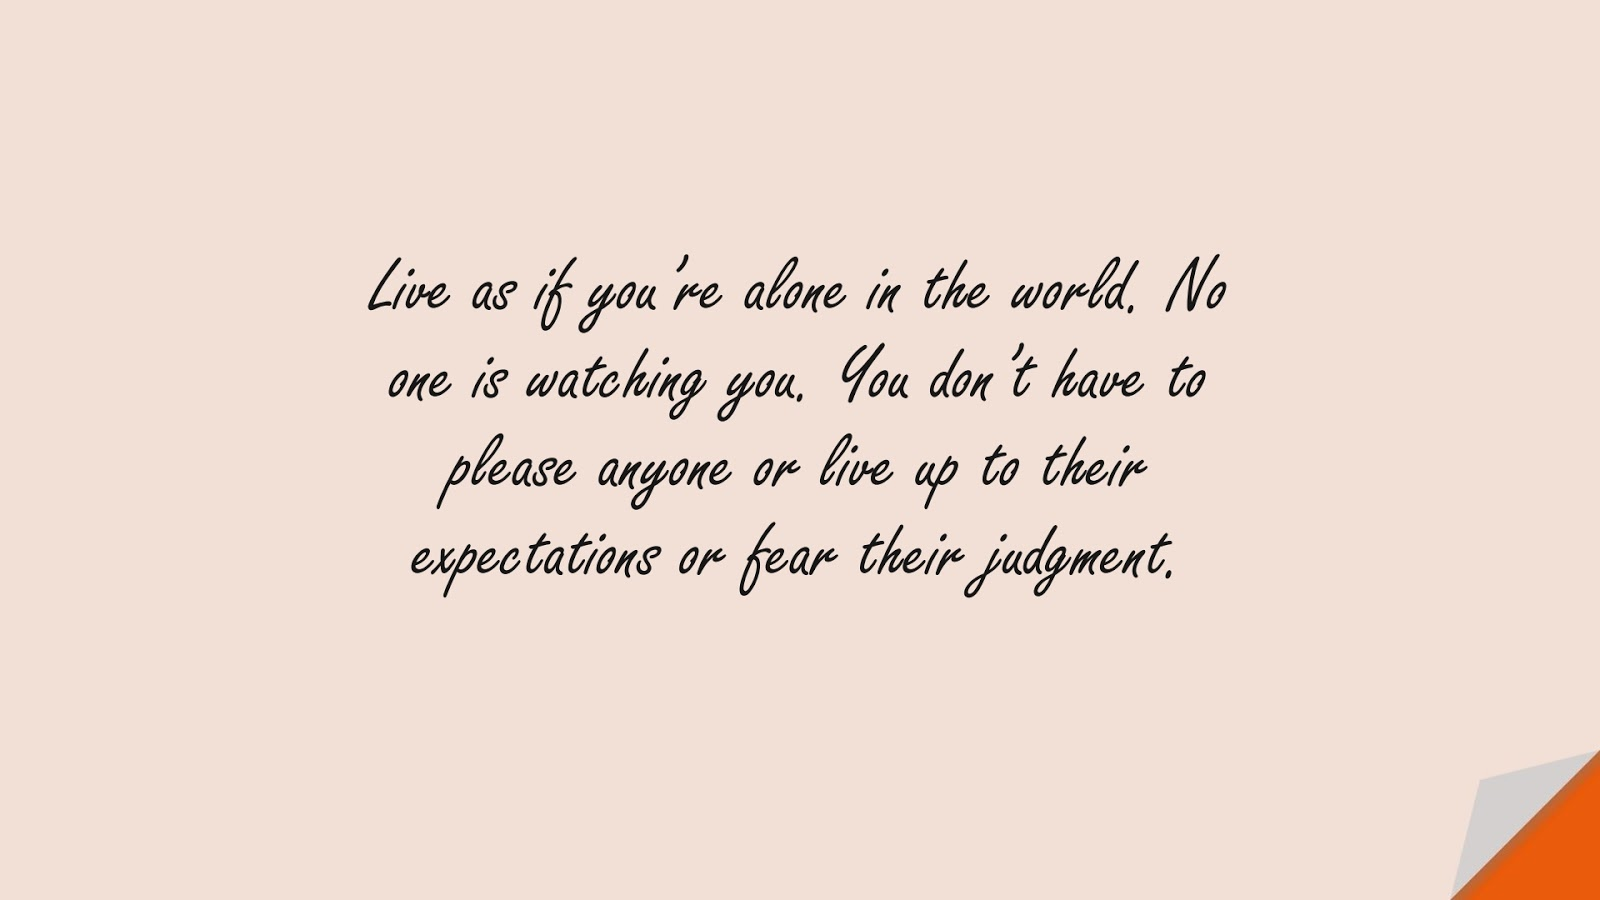 Live as if you're alone in the world. No one is watching you. You don't have to please anyone or live up to their expectations or fear their judgment.FALSE